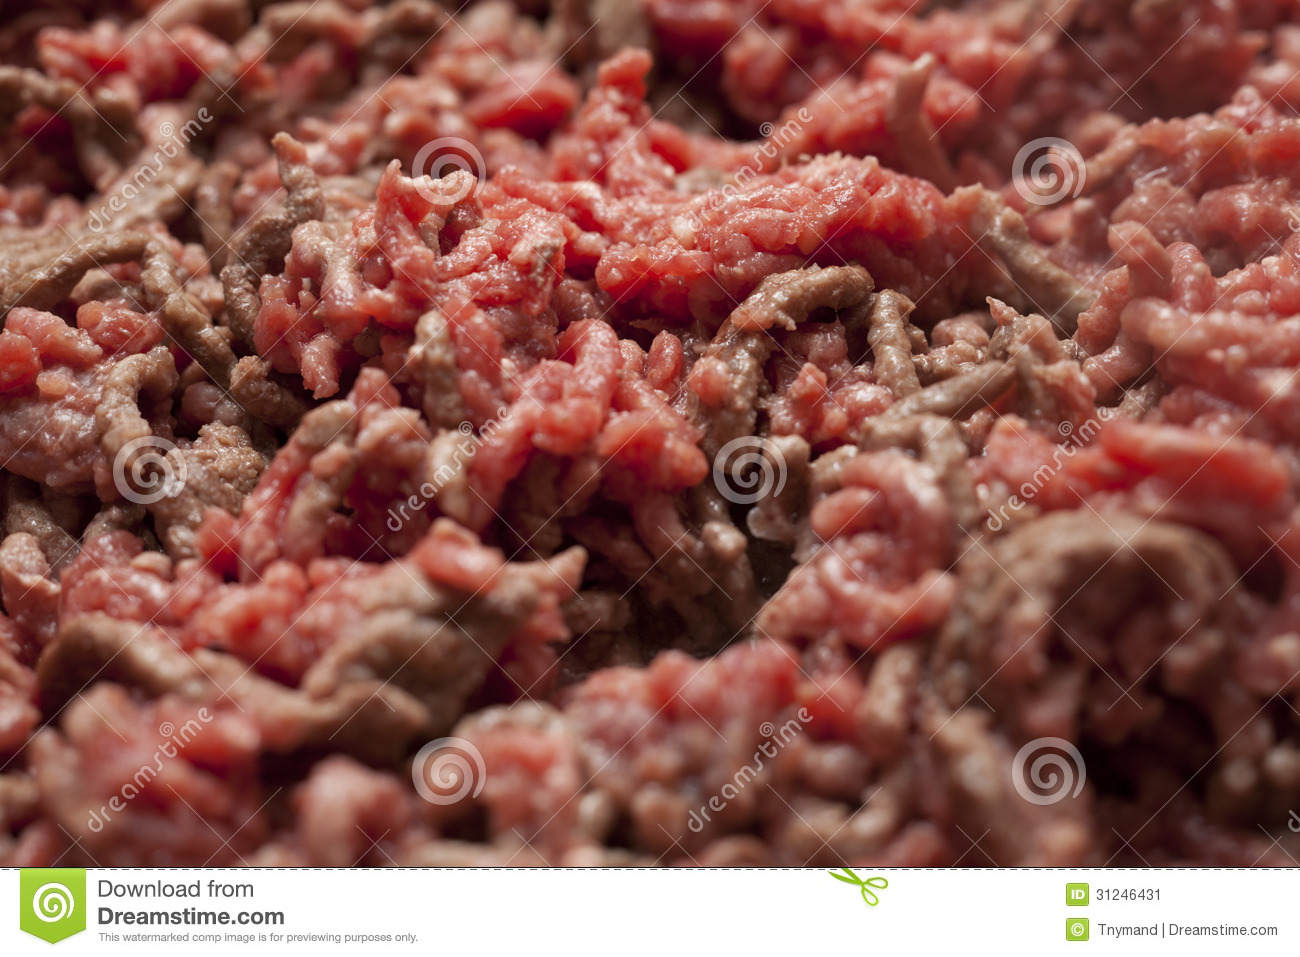 how to cook minced meat